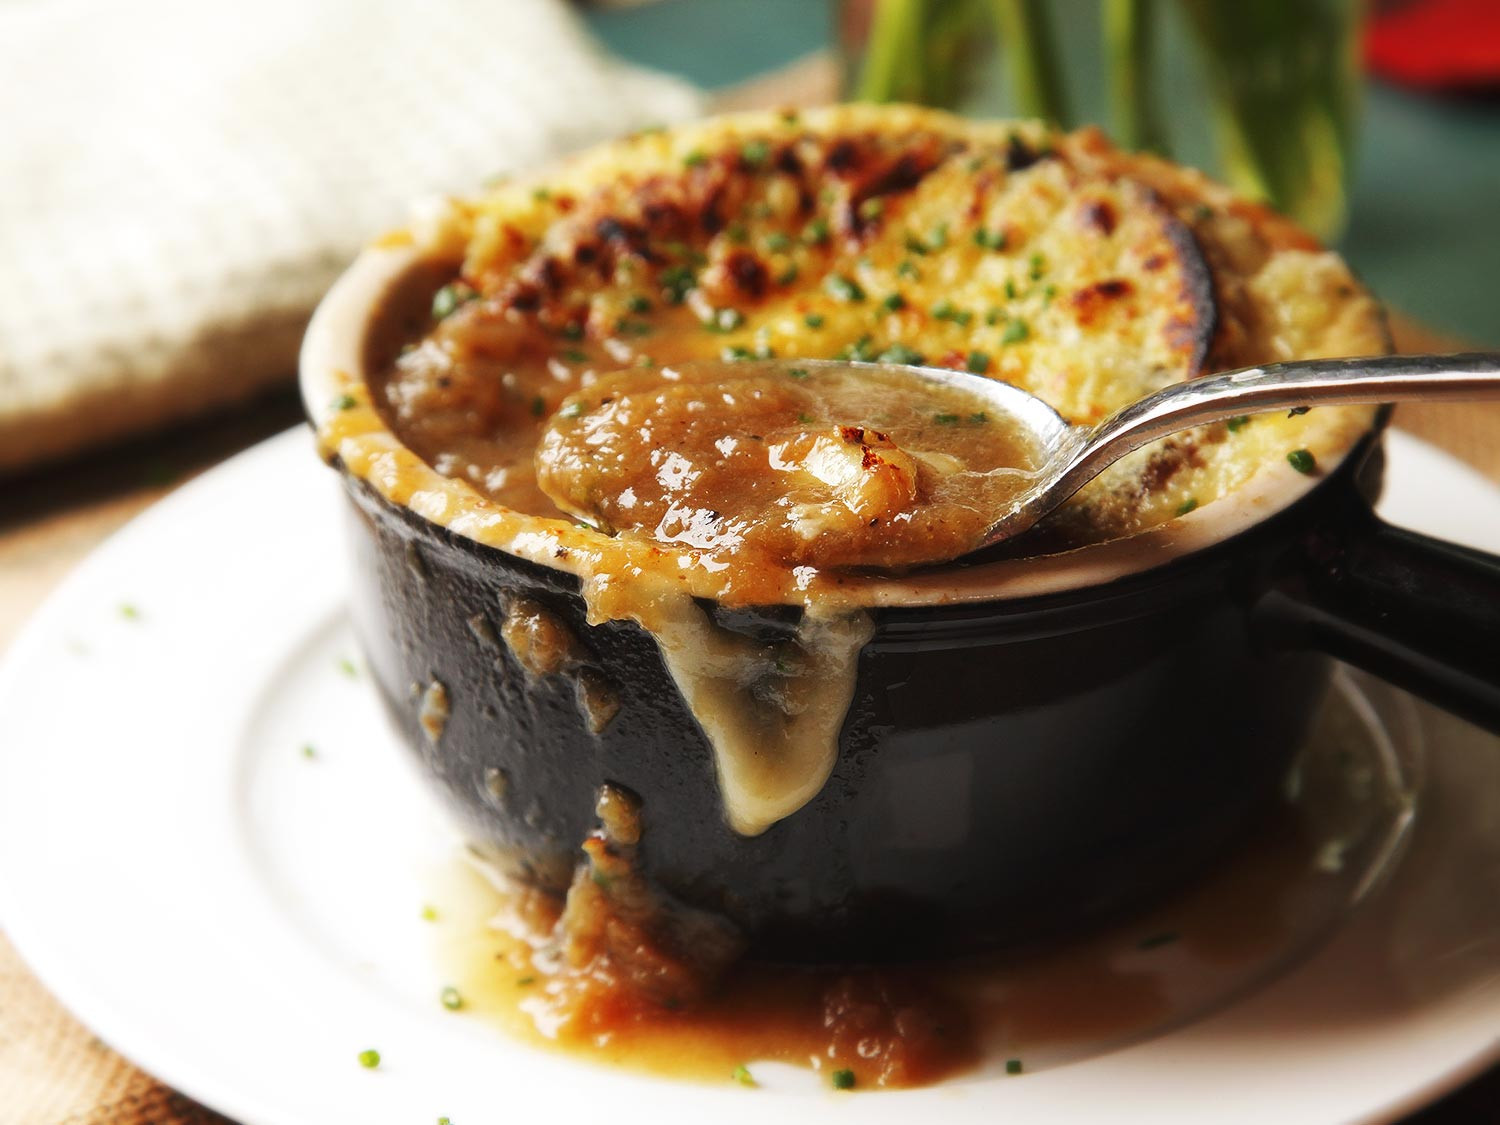 How To Make French Onion Soup  The Food Lab Use the Pressure Cooker for Quick